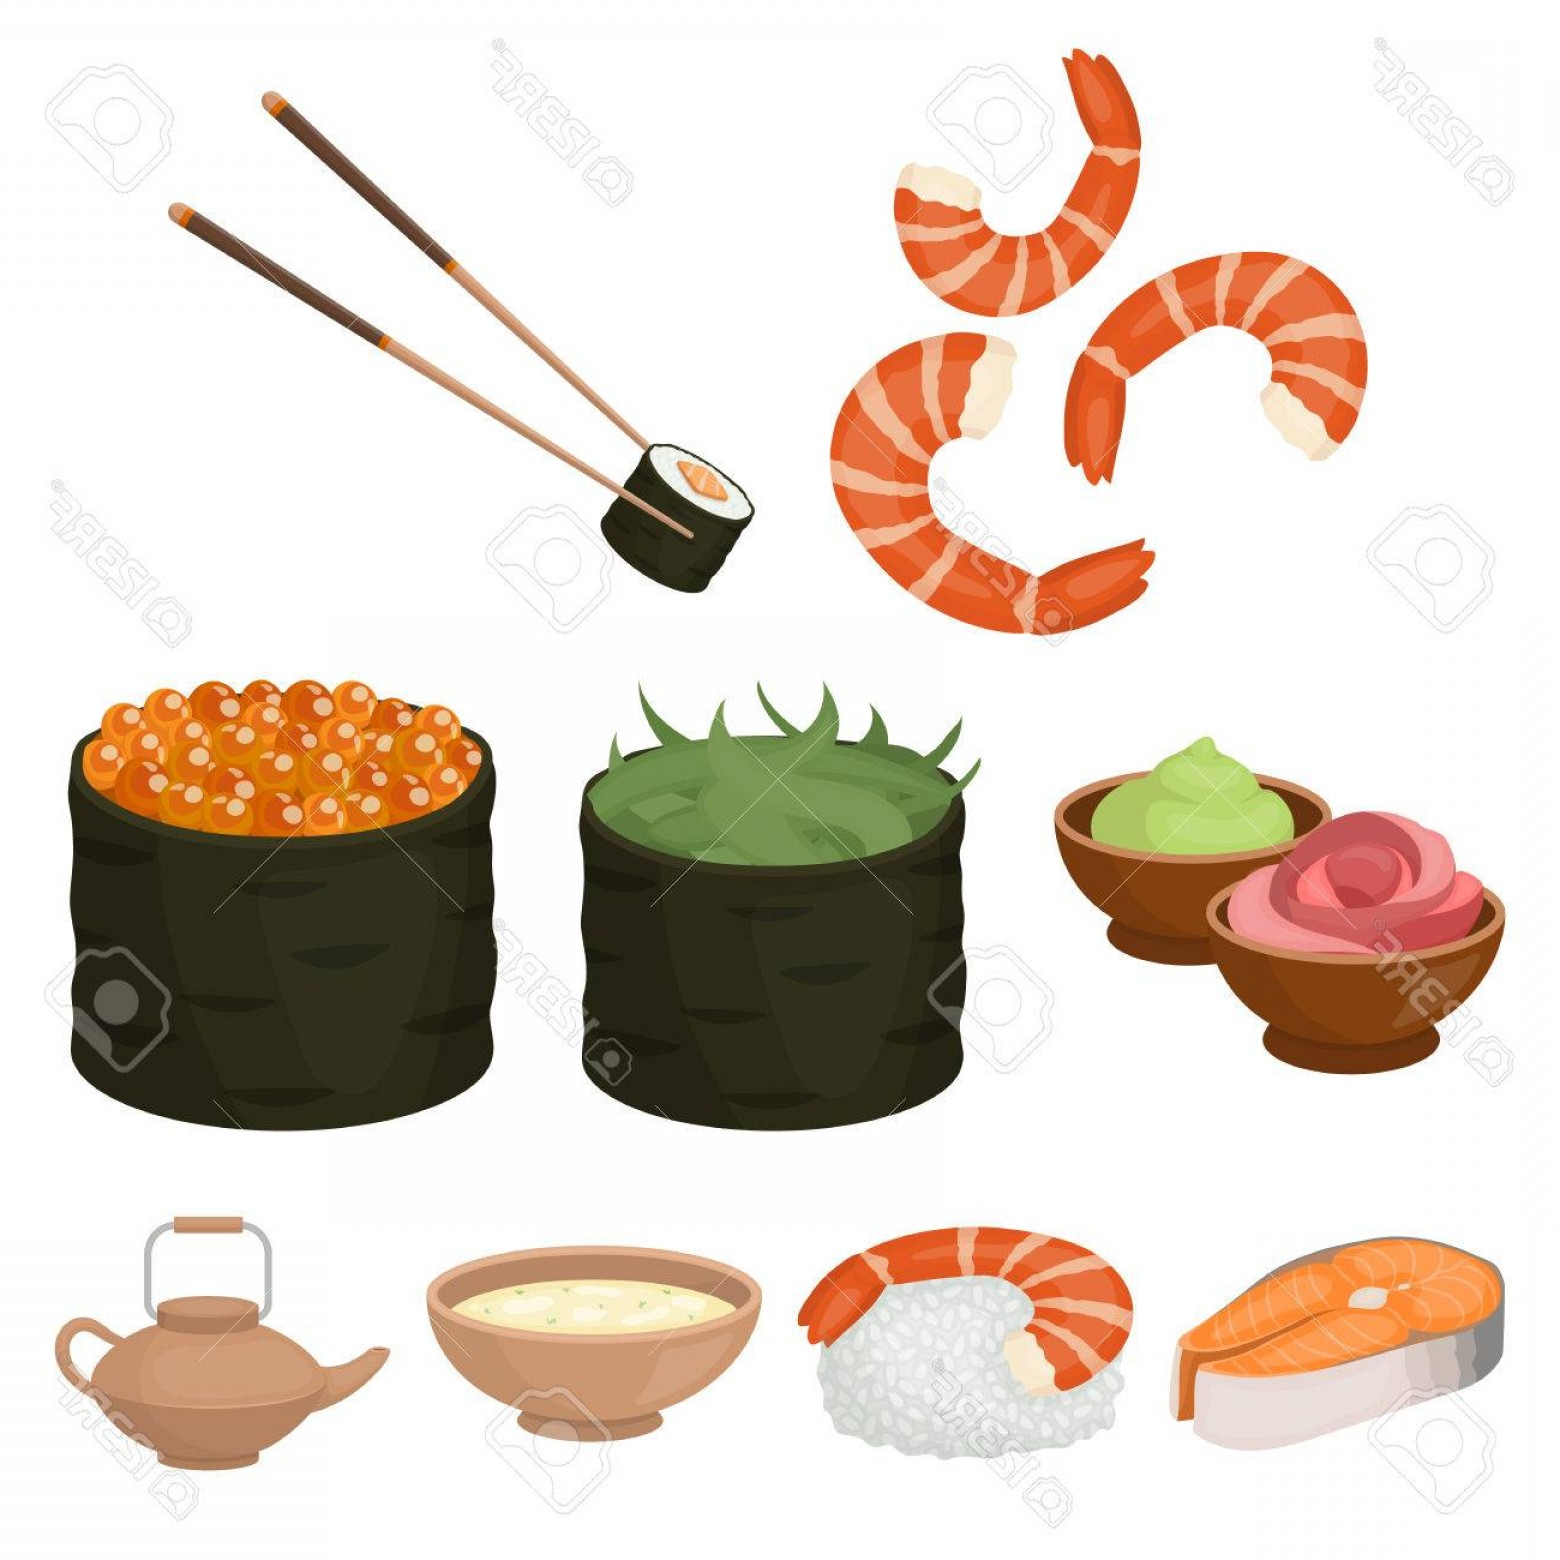 Sushi Vector Art: Photostock Vector Sushi Set Icons In Cartoon Style Big Collection Of Sushi Vector Symbol Stock